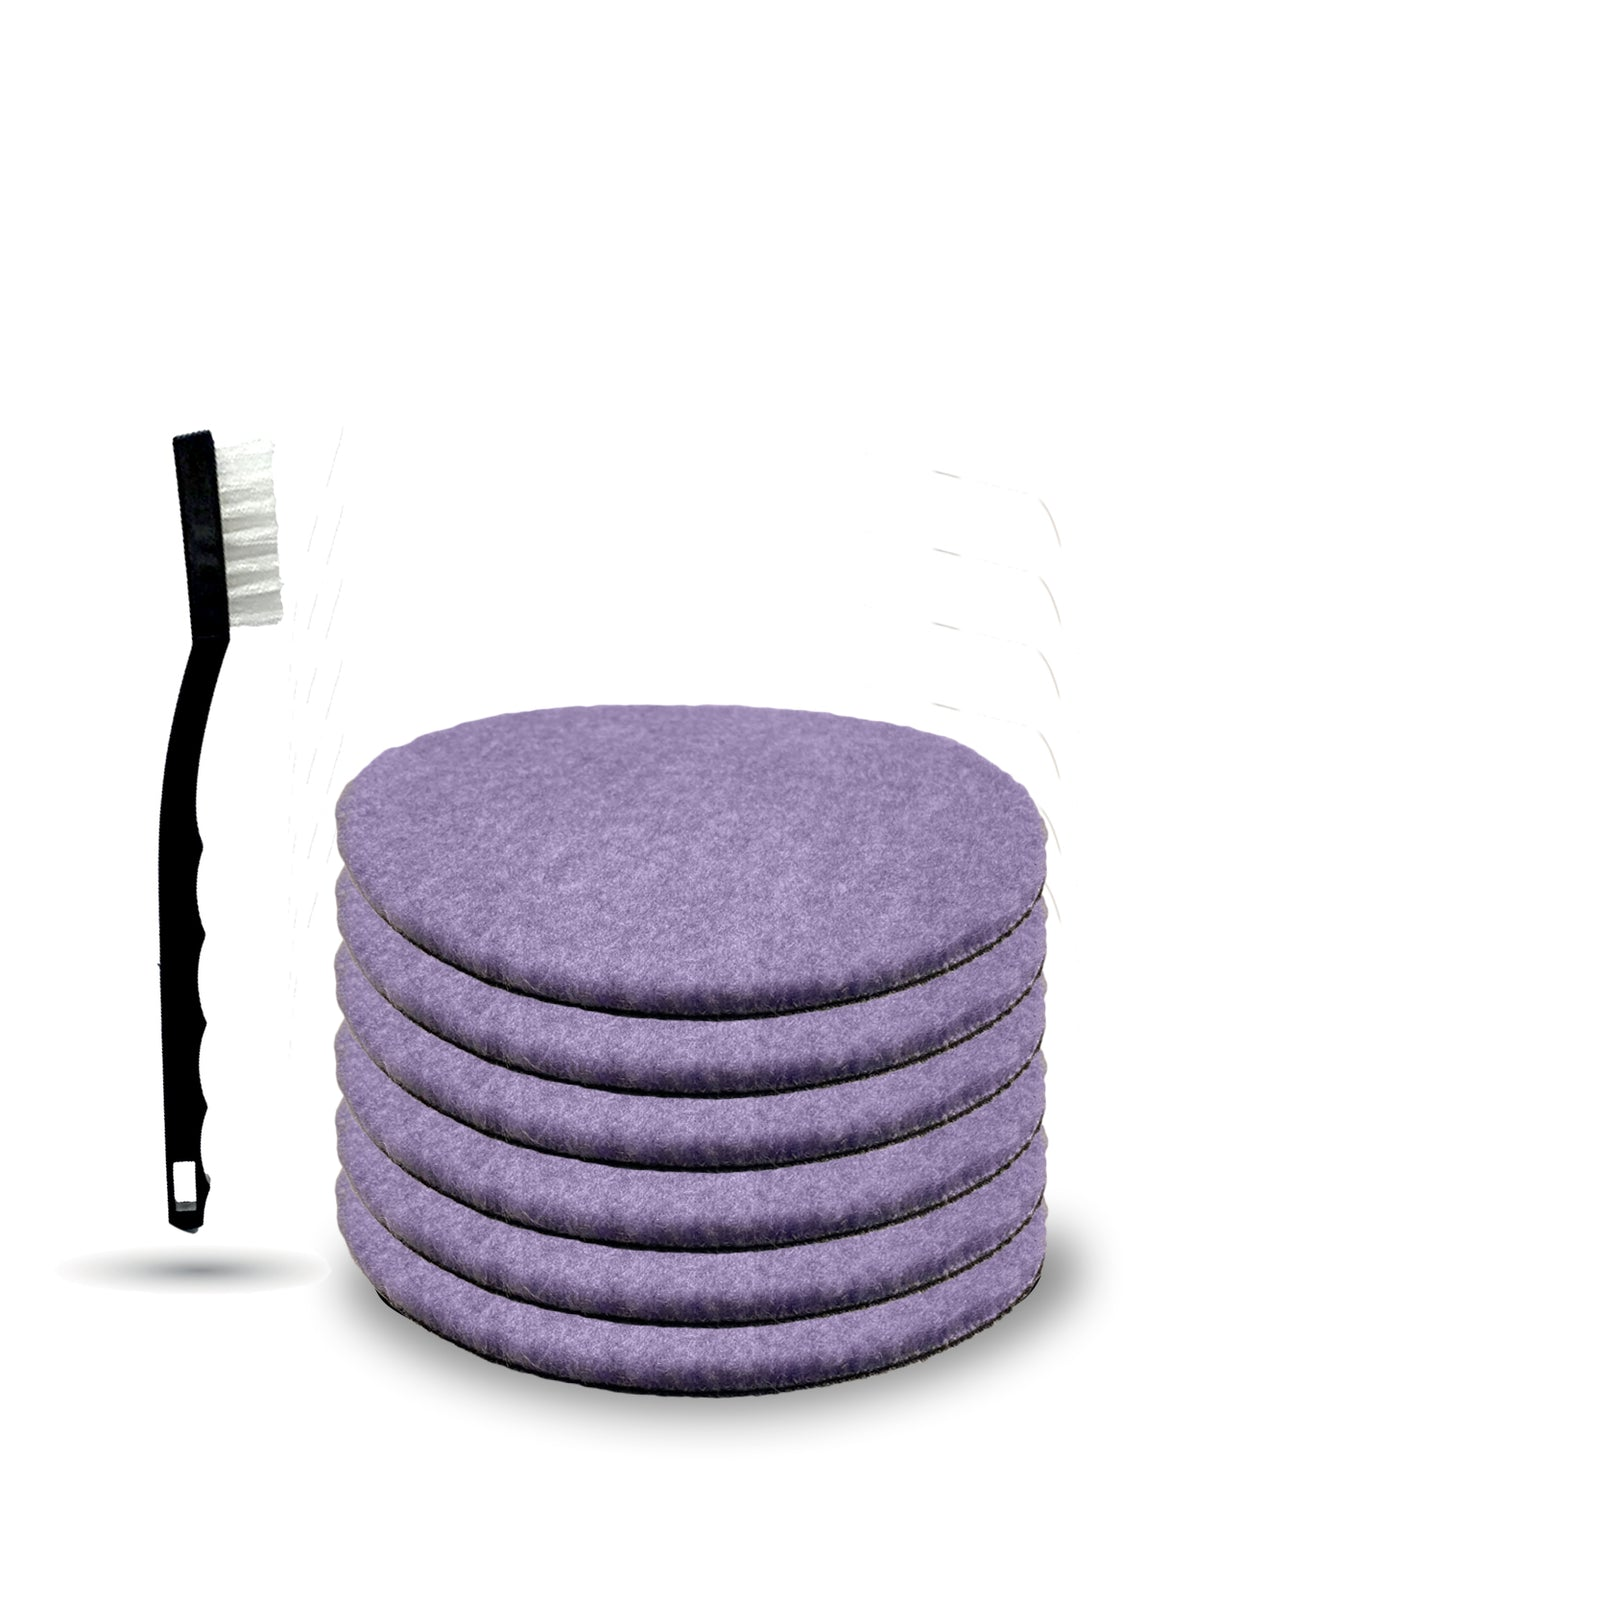 "5 1/4"" x 1/4"" Purple Thin Foamed Wool Pad"